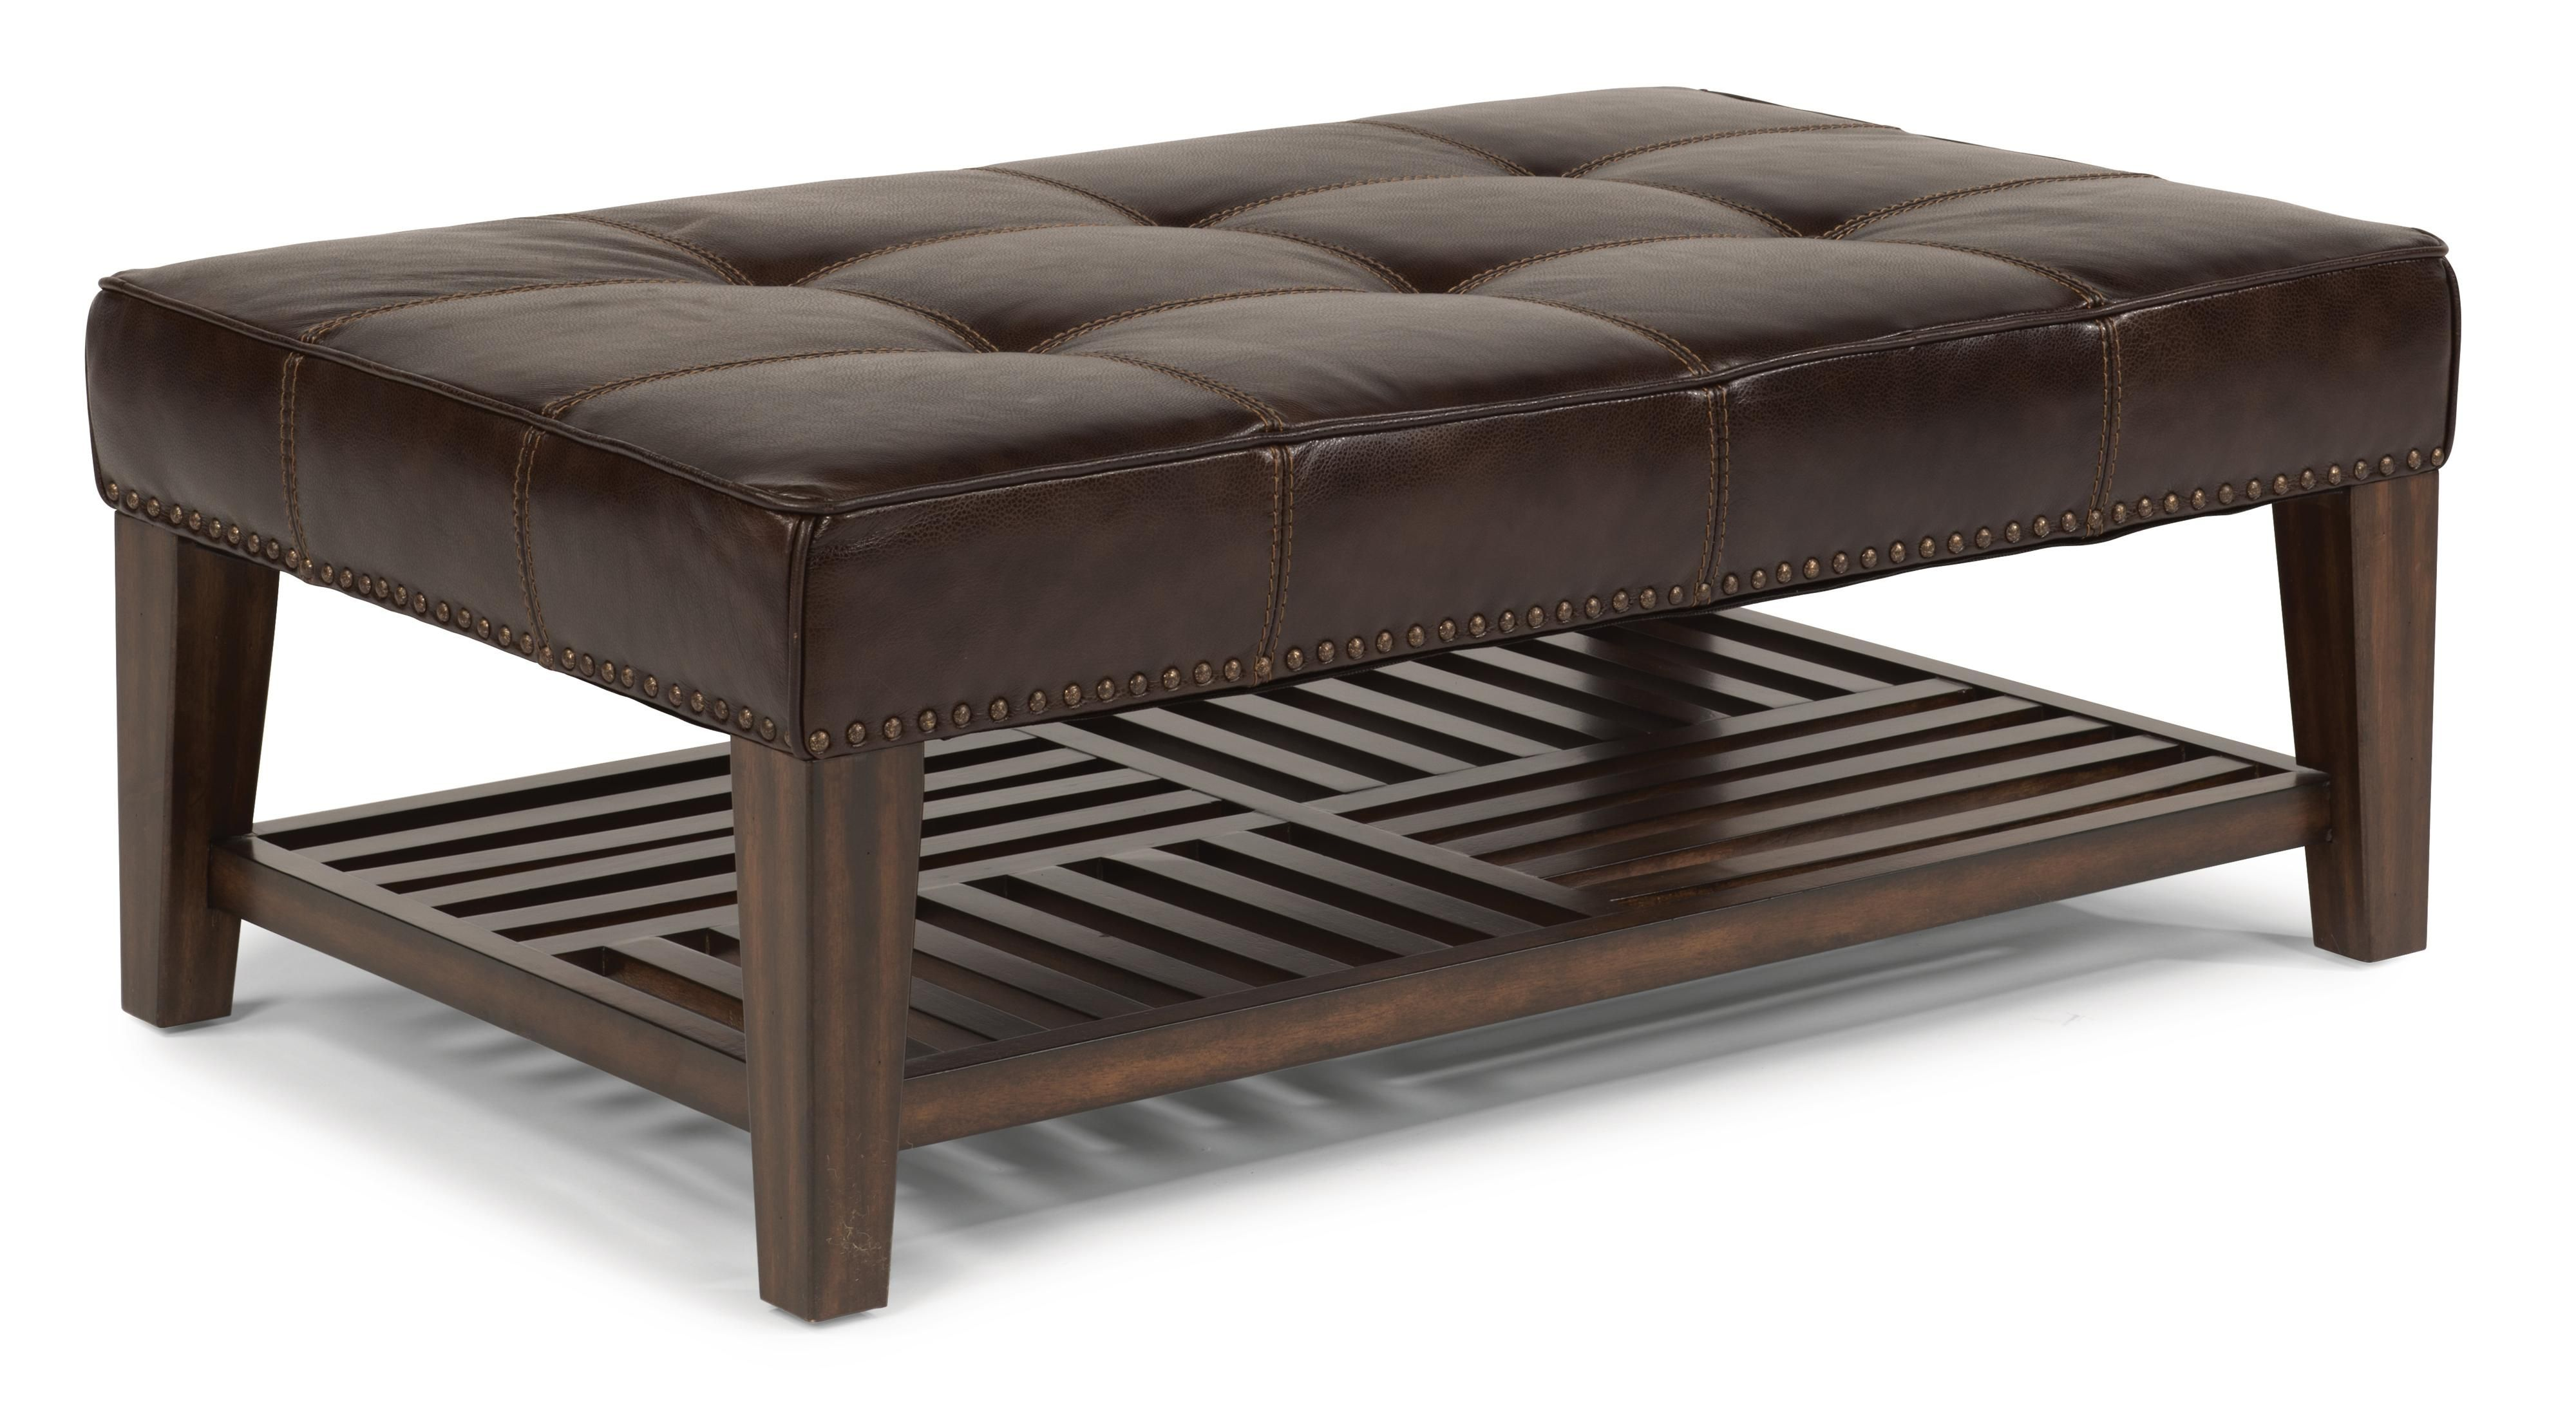 Surprising Latitudes Port Royal Upholstered Cocktail Ottoman With Unemploymentrelief Wooden Chair Designs For Living Room Unemploymentrelieforg